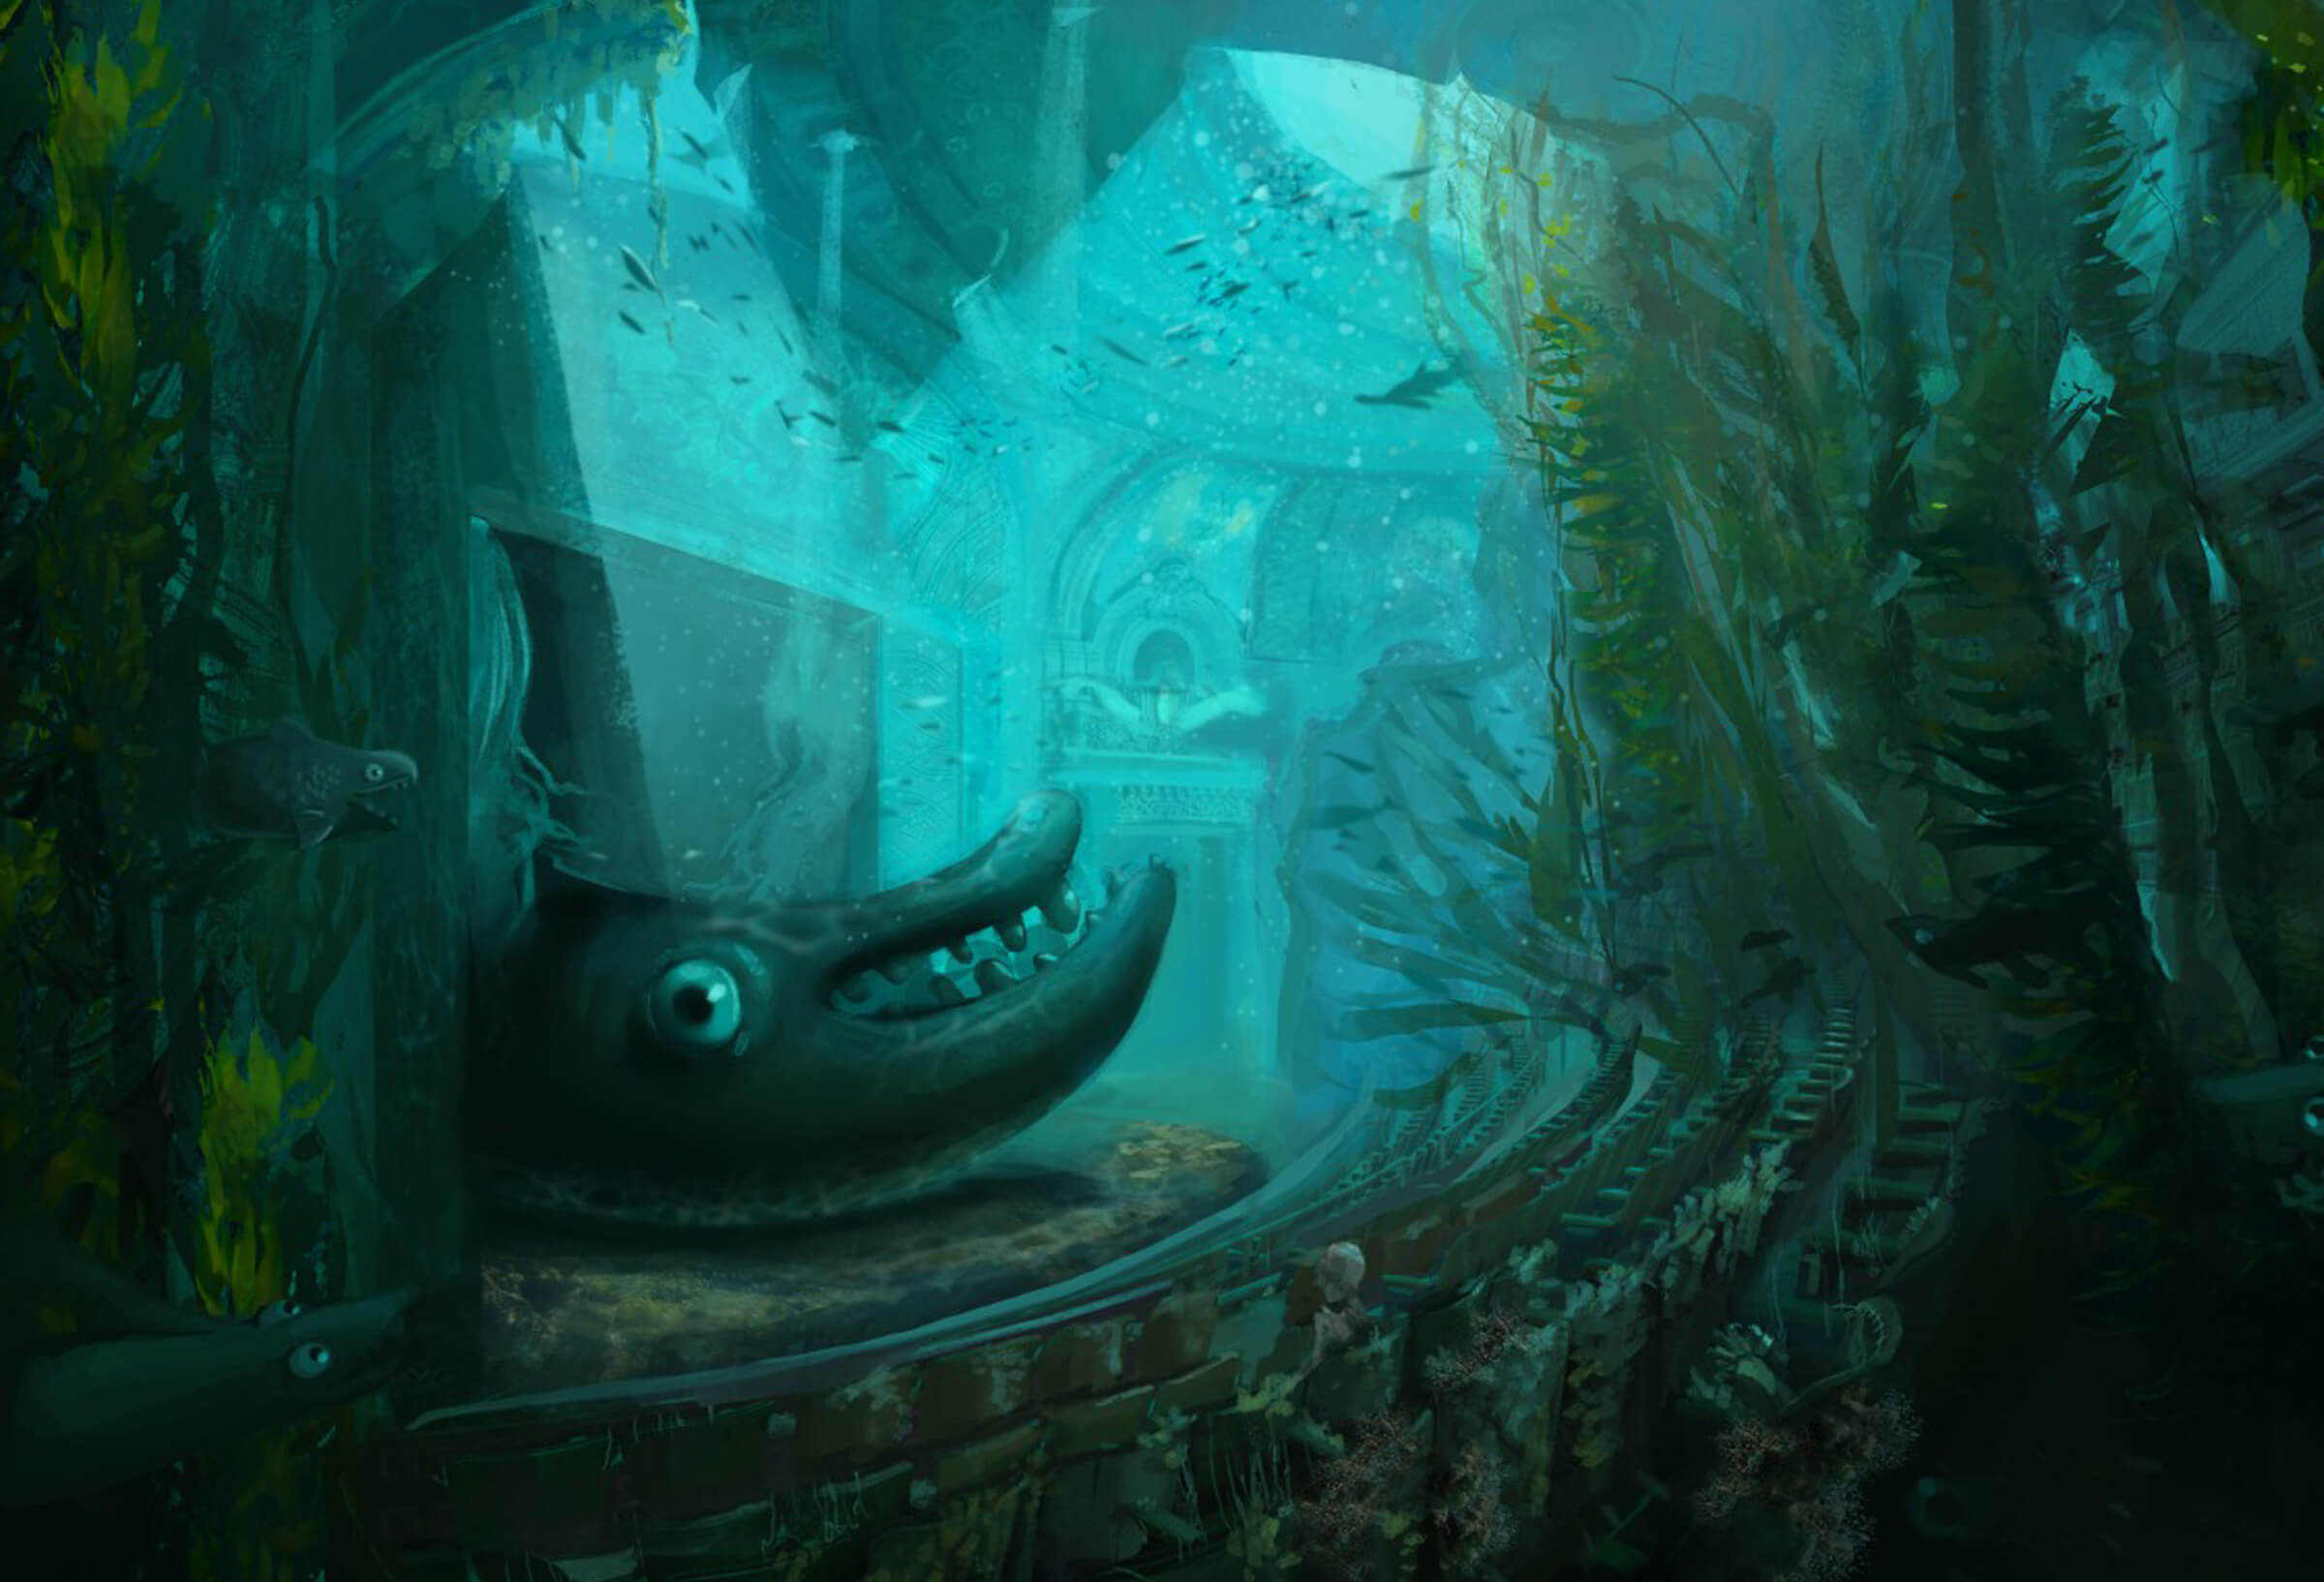 digital painting of an underwater theater with a large sea creature on stage